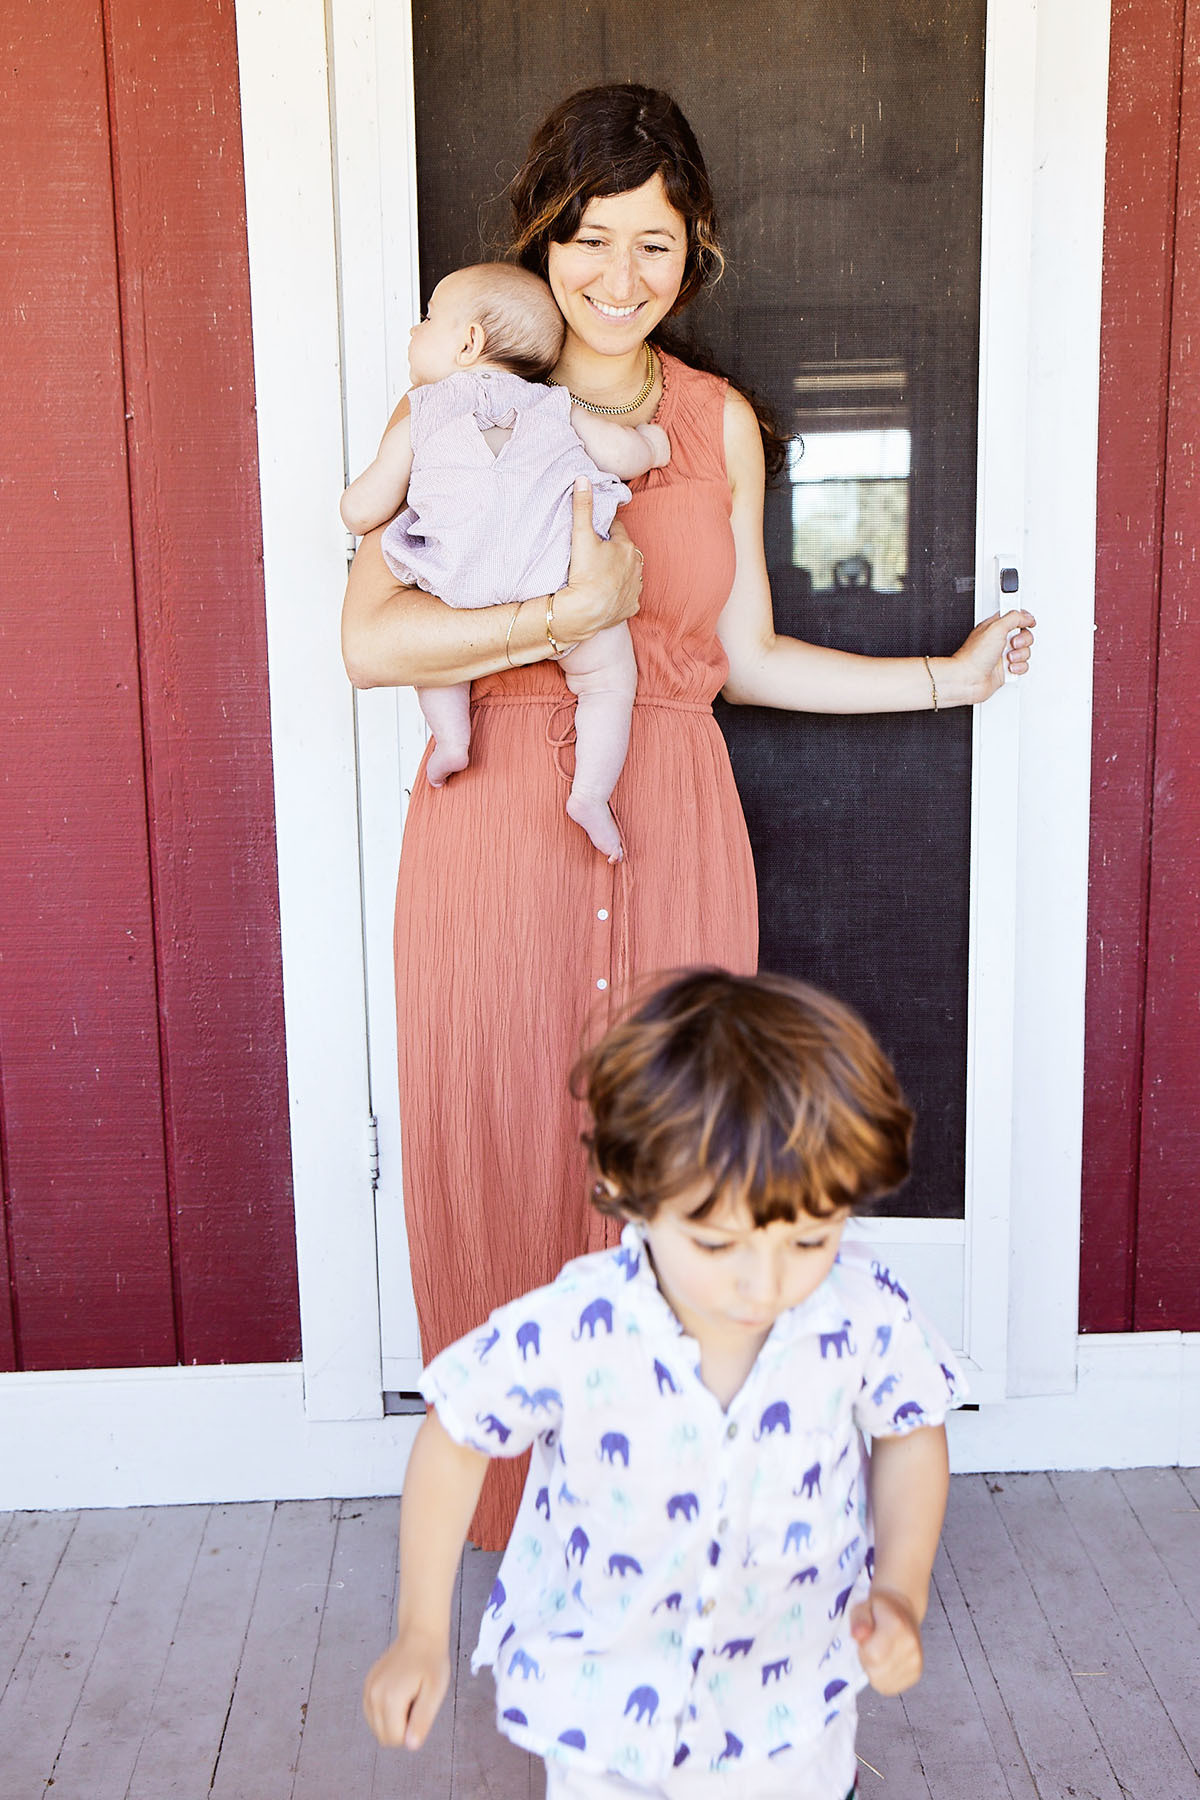 The mom-of-two fell in love with her sunny Napa Valley home, pictured here with four-month-old daughter, Goldie, and three-year-old son, Felix.